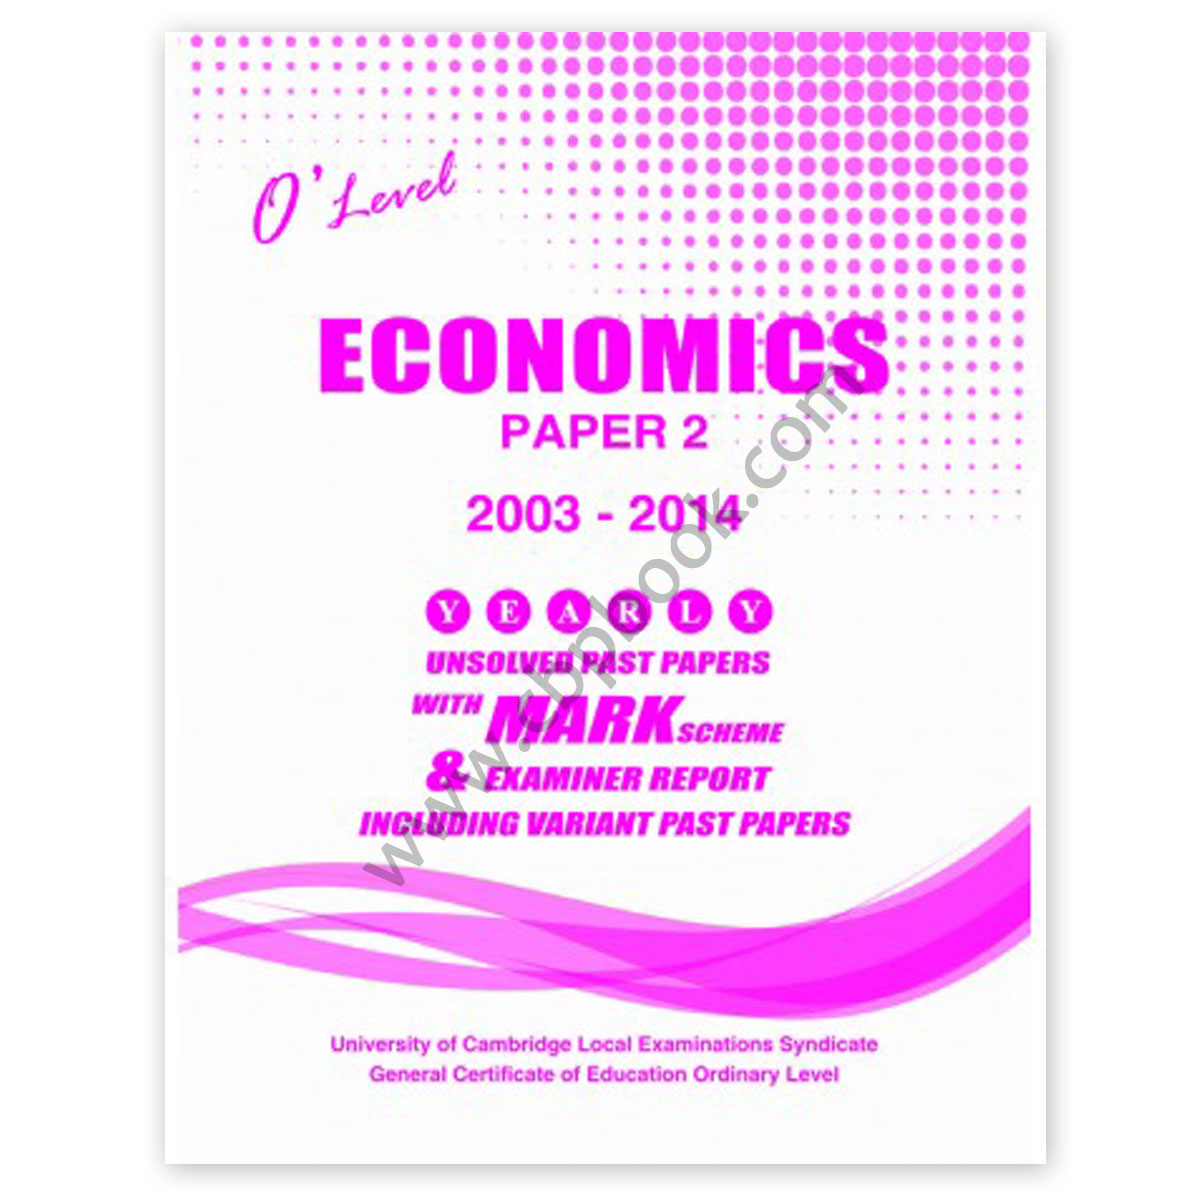 O Level ECONOMICS Paper 2 Yearly Unsolved with Mark Scheme 2003 - June 2018